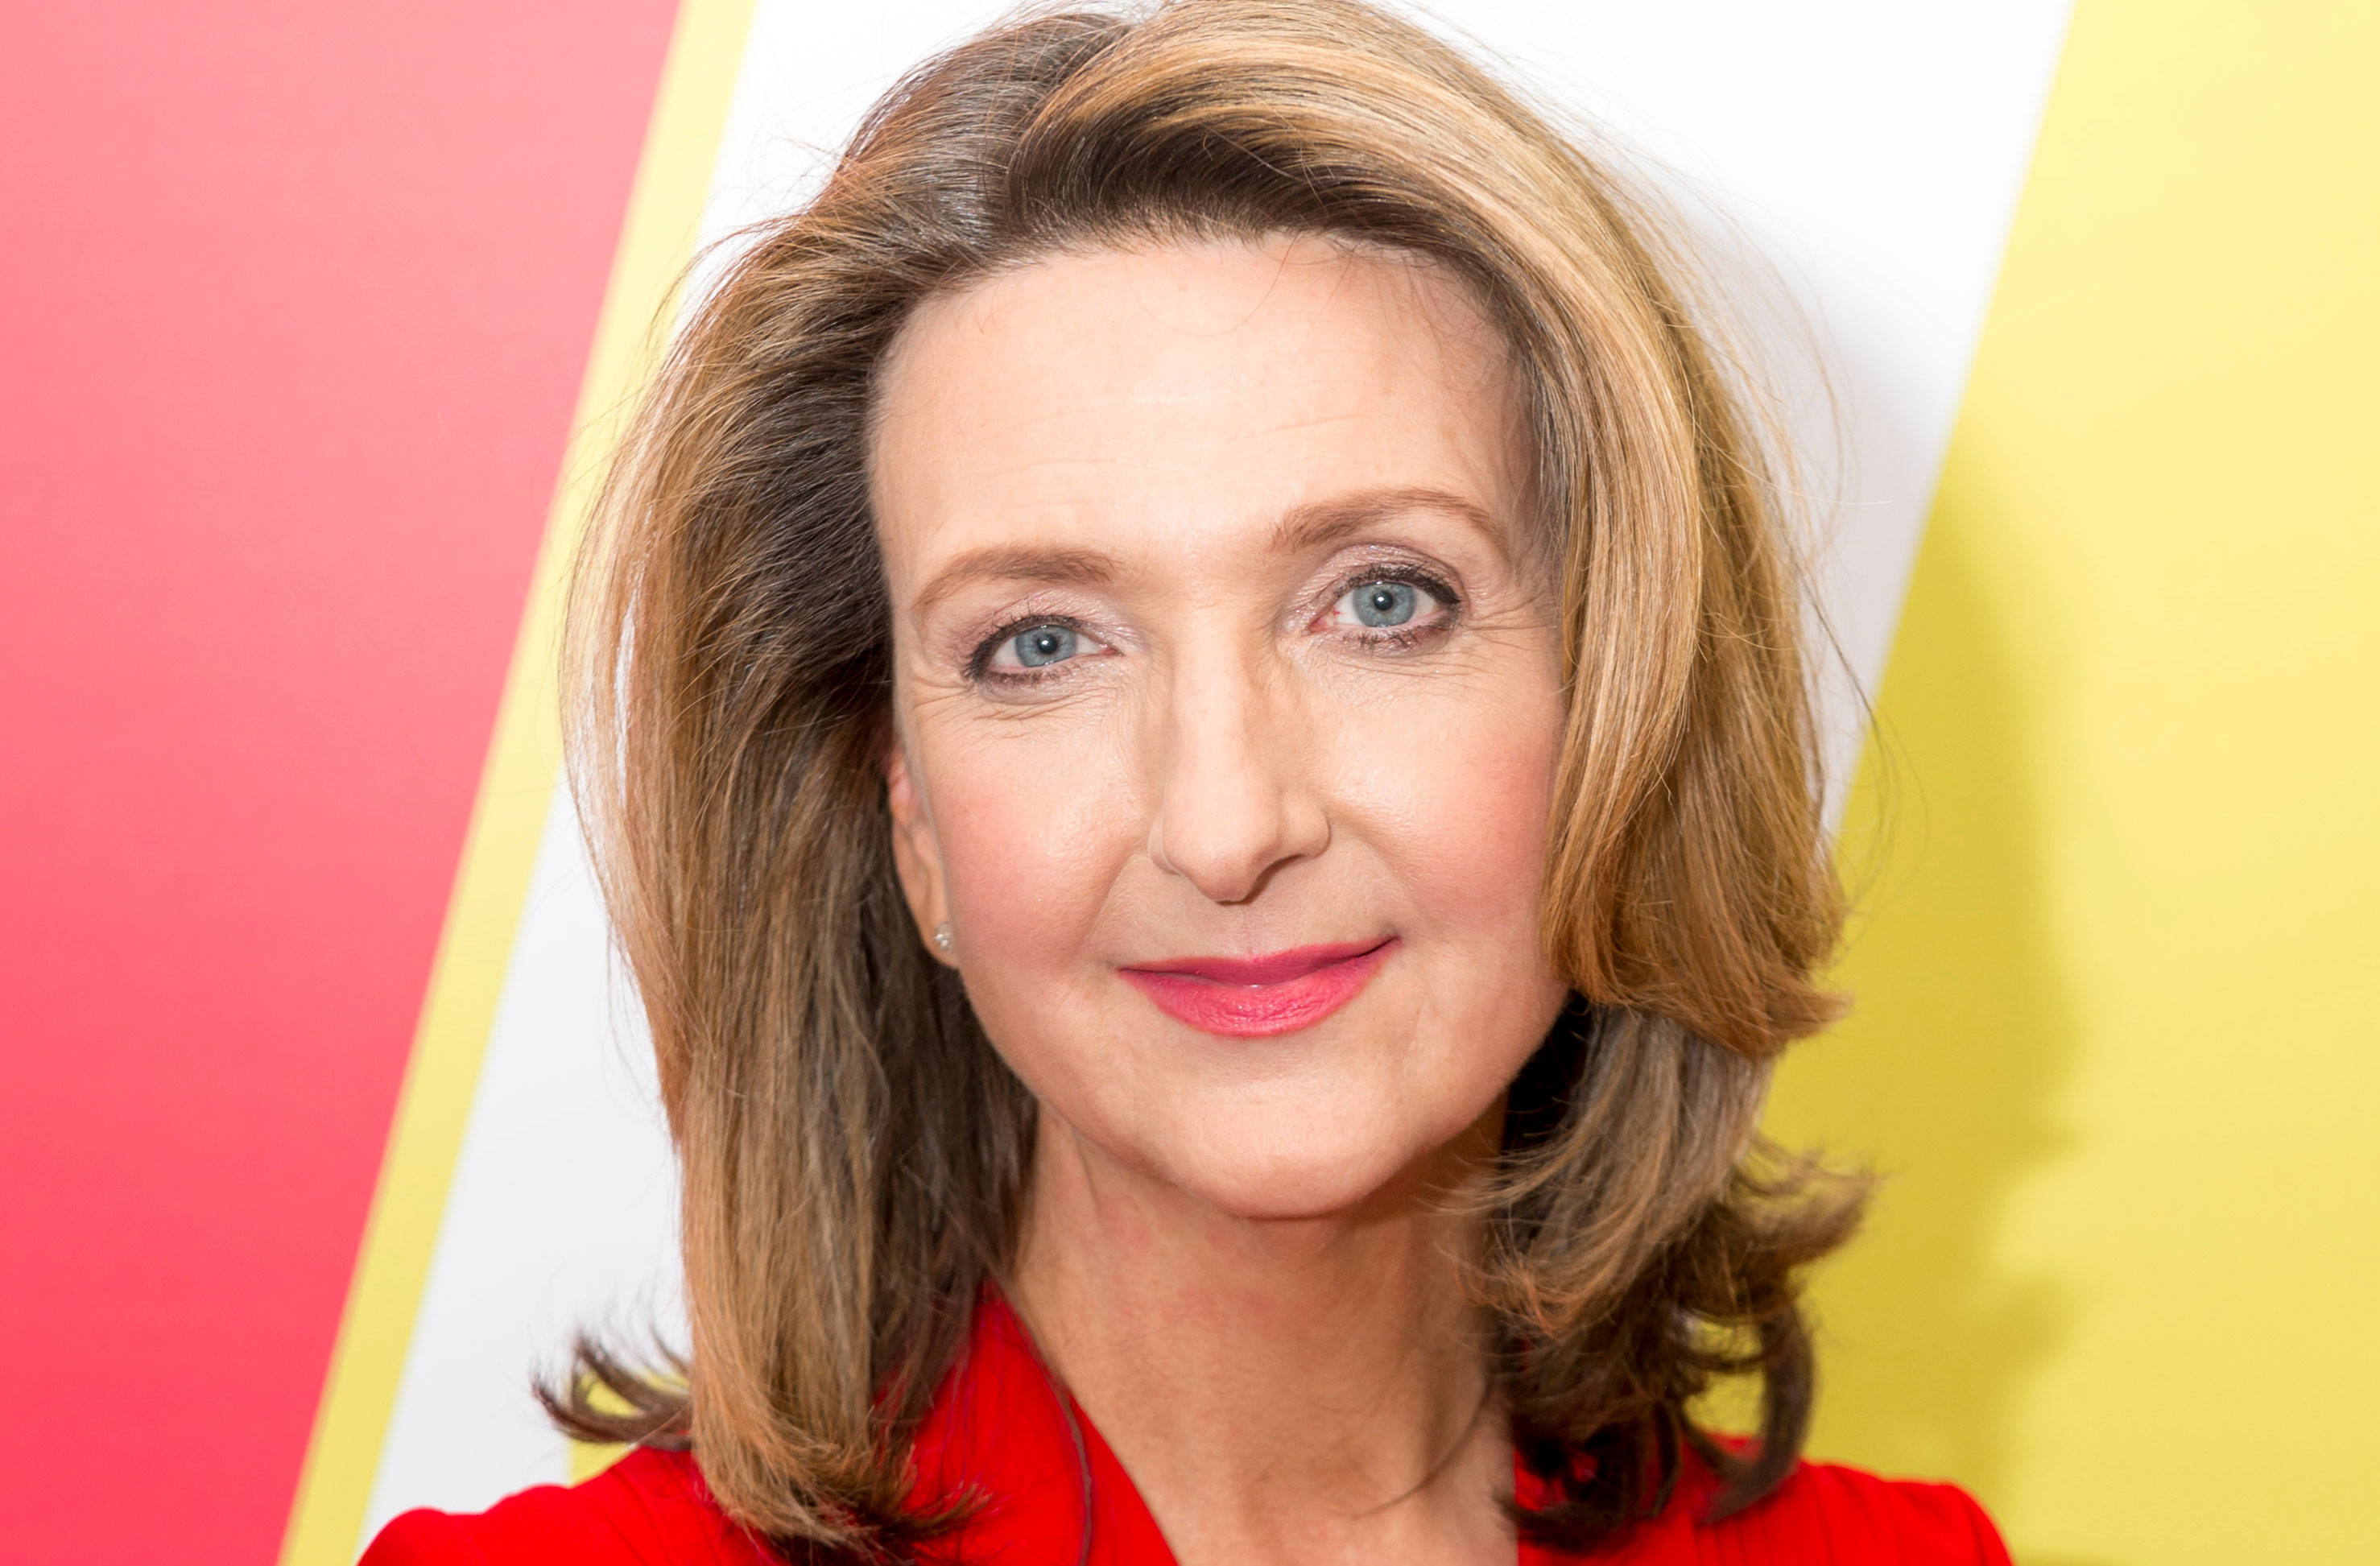 Victoria Derbyshire Wrote Letters To Her Sons Before Her Mastectomy